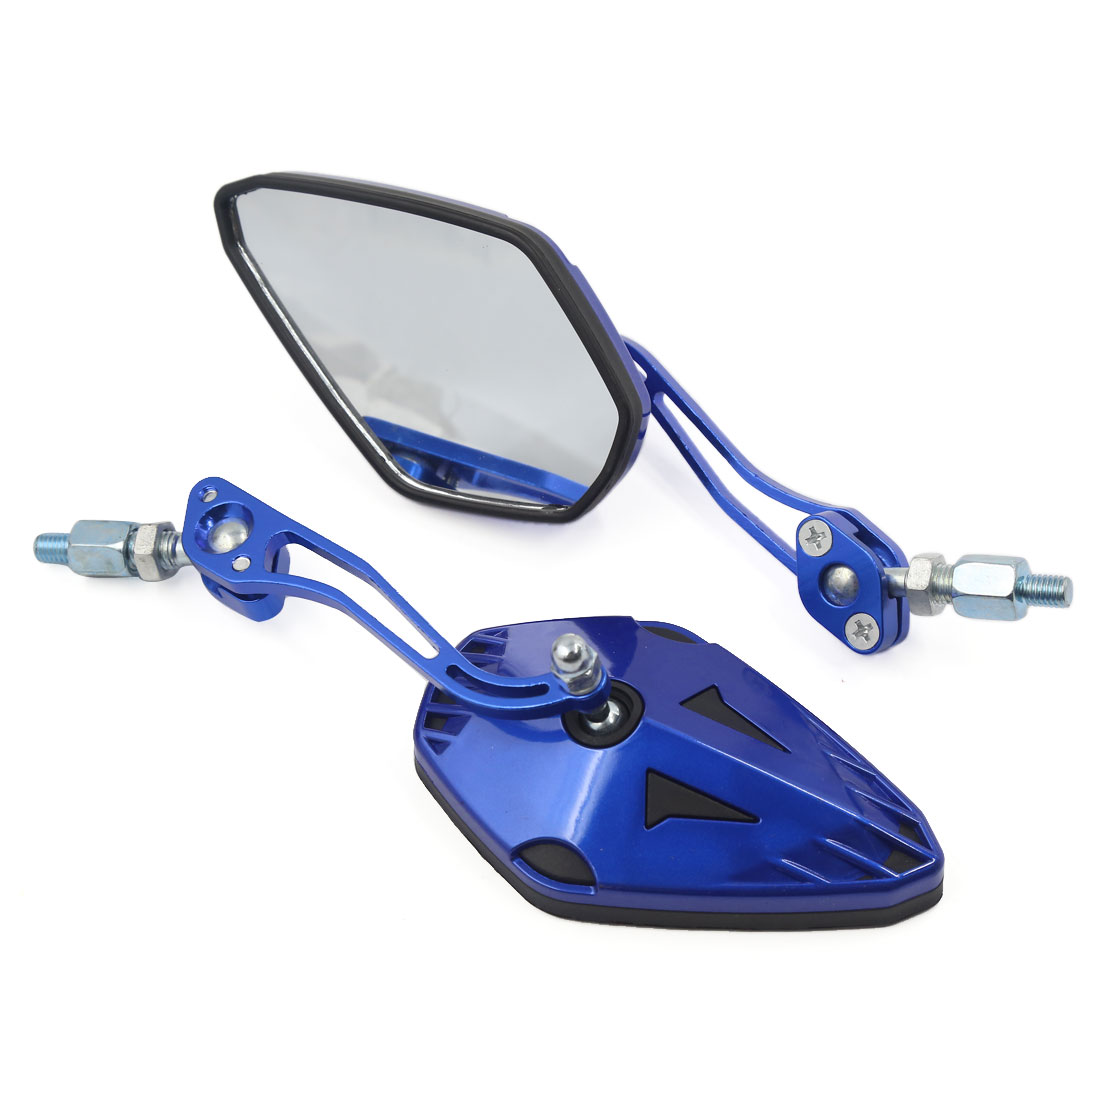 2 Pcs 360 Degree Rotatable Pentagon Motorcycle Rear View Mirrors 8mm 10mm Blue